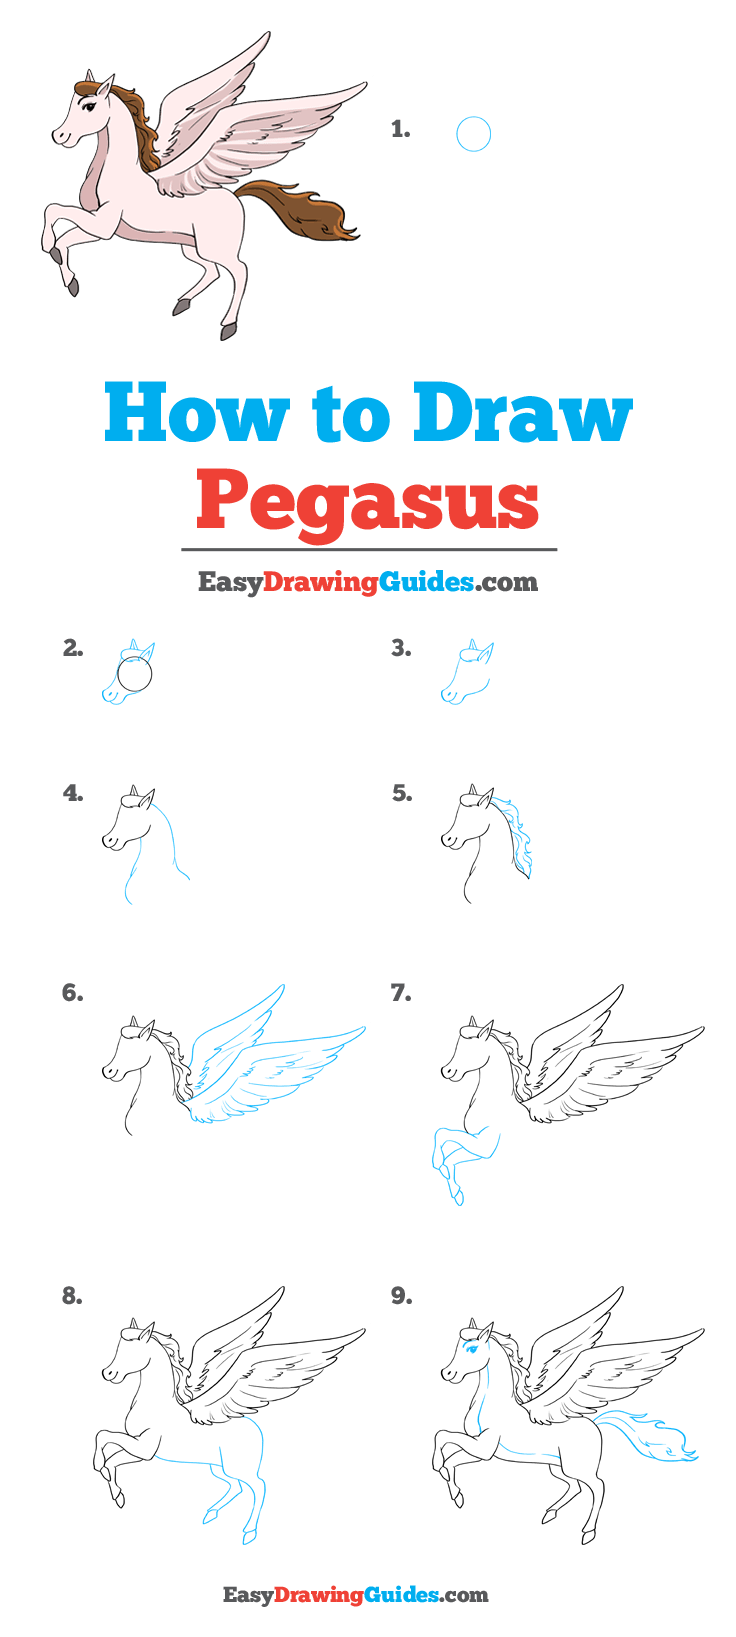 How to Draw Pegasus